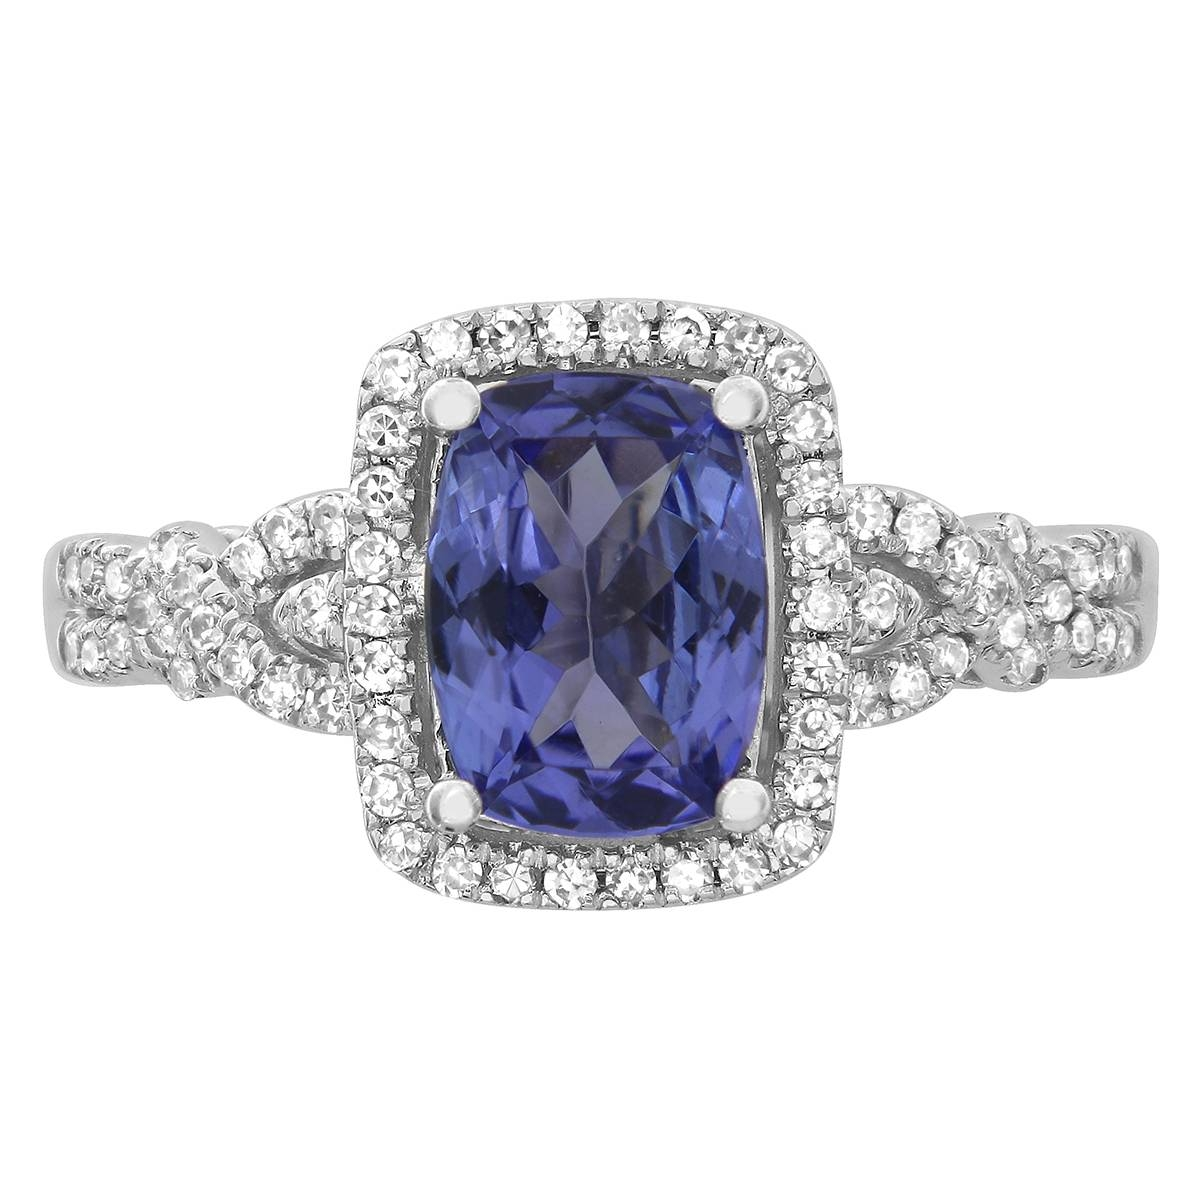 10k White Gold Cushion Cut Tanzanite And Diamond Engagement Ring For Diamond Tanzanite Engagement Rings (View 11 of 15)